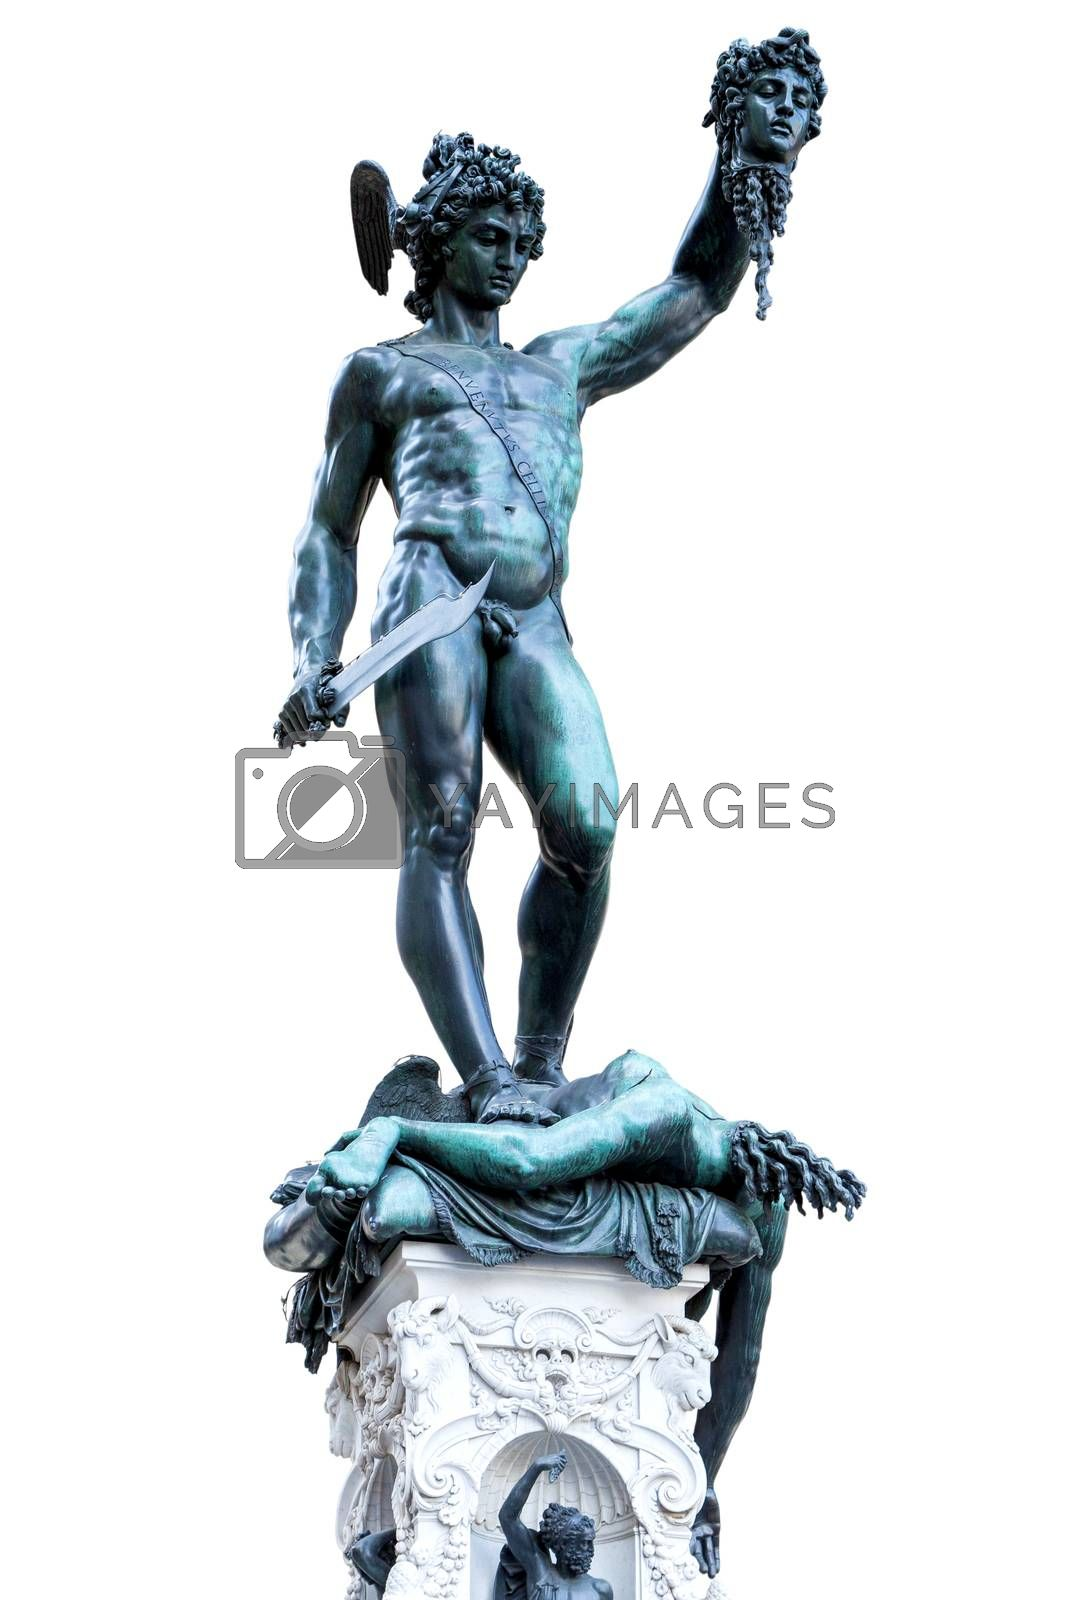 Statue of Perseus With the Head of Medusa in Piazza della Signoria, Florence, Italy. Bronze sculpture made by Benvenuto Cellini isolated on white background